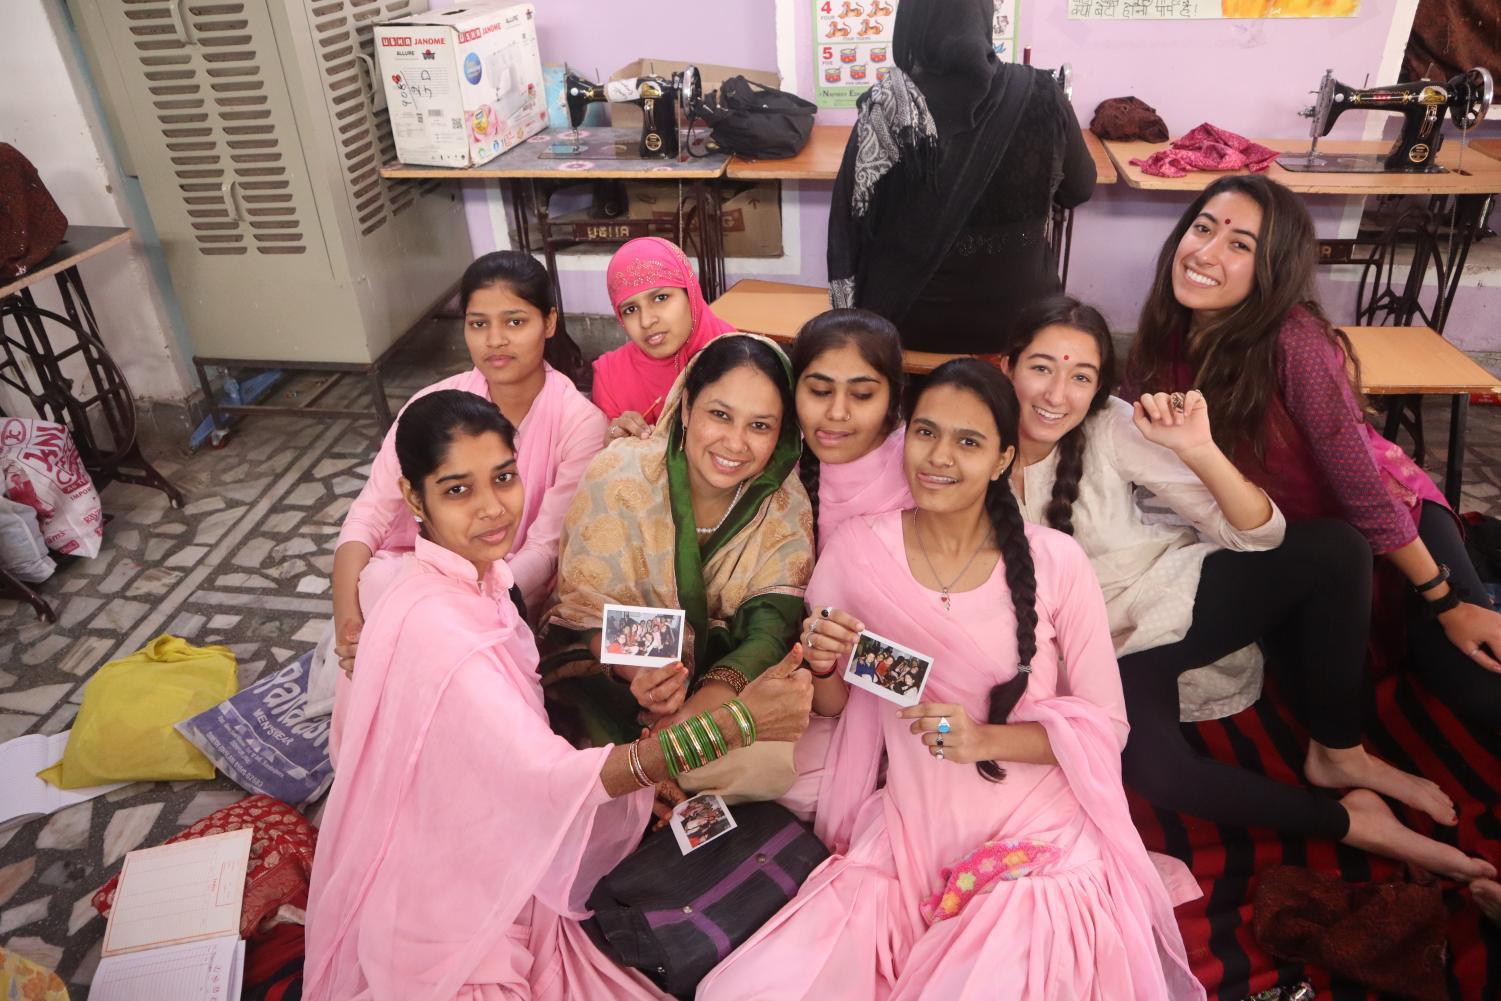 Juniors+Ariana+Golpa+and+Leila+Mirdamadi+pose+with+women+at+the+Sambhali+Trust+women%27s+empowerment+center.+The+Archer+girls+helped+with+administrative+work+at+the+organization.+